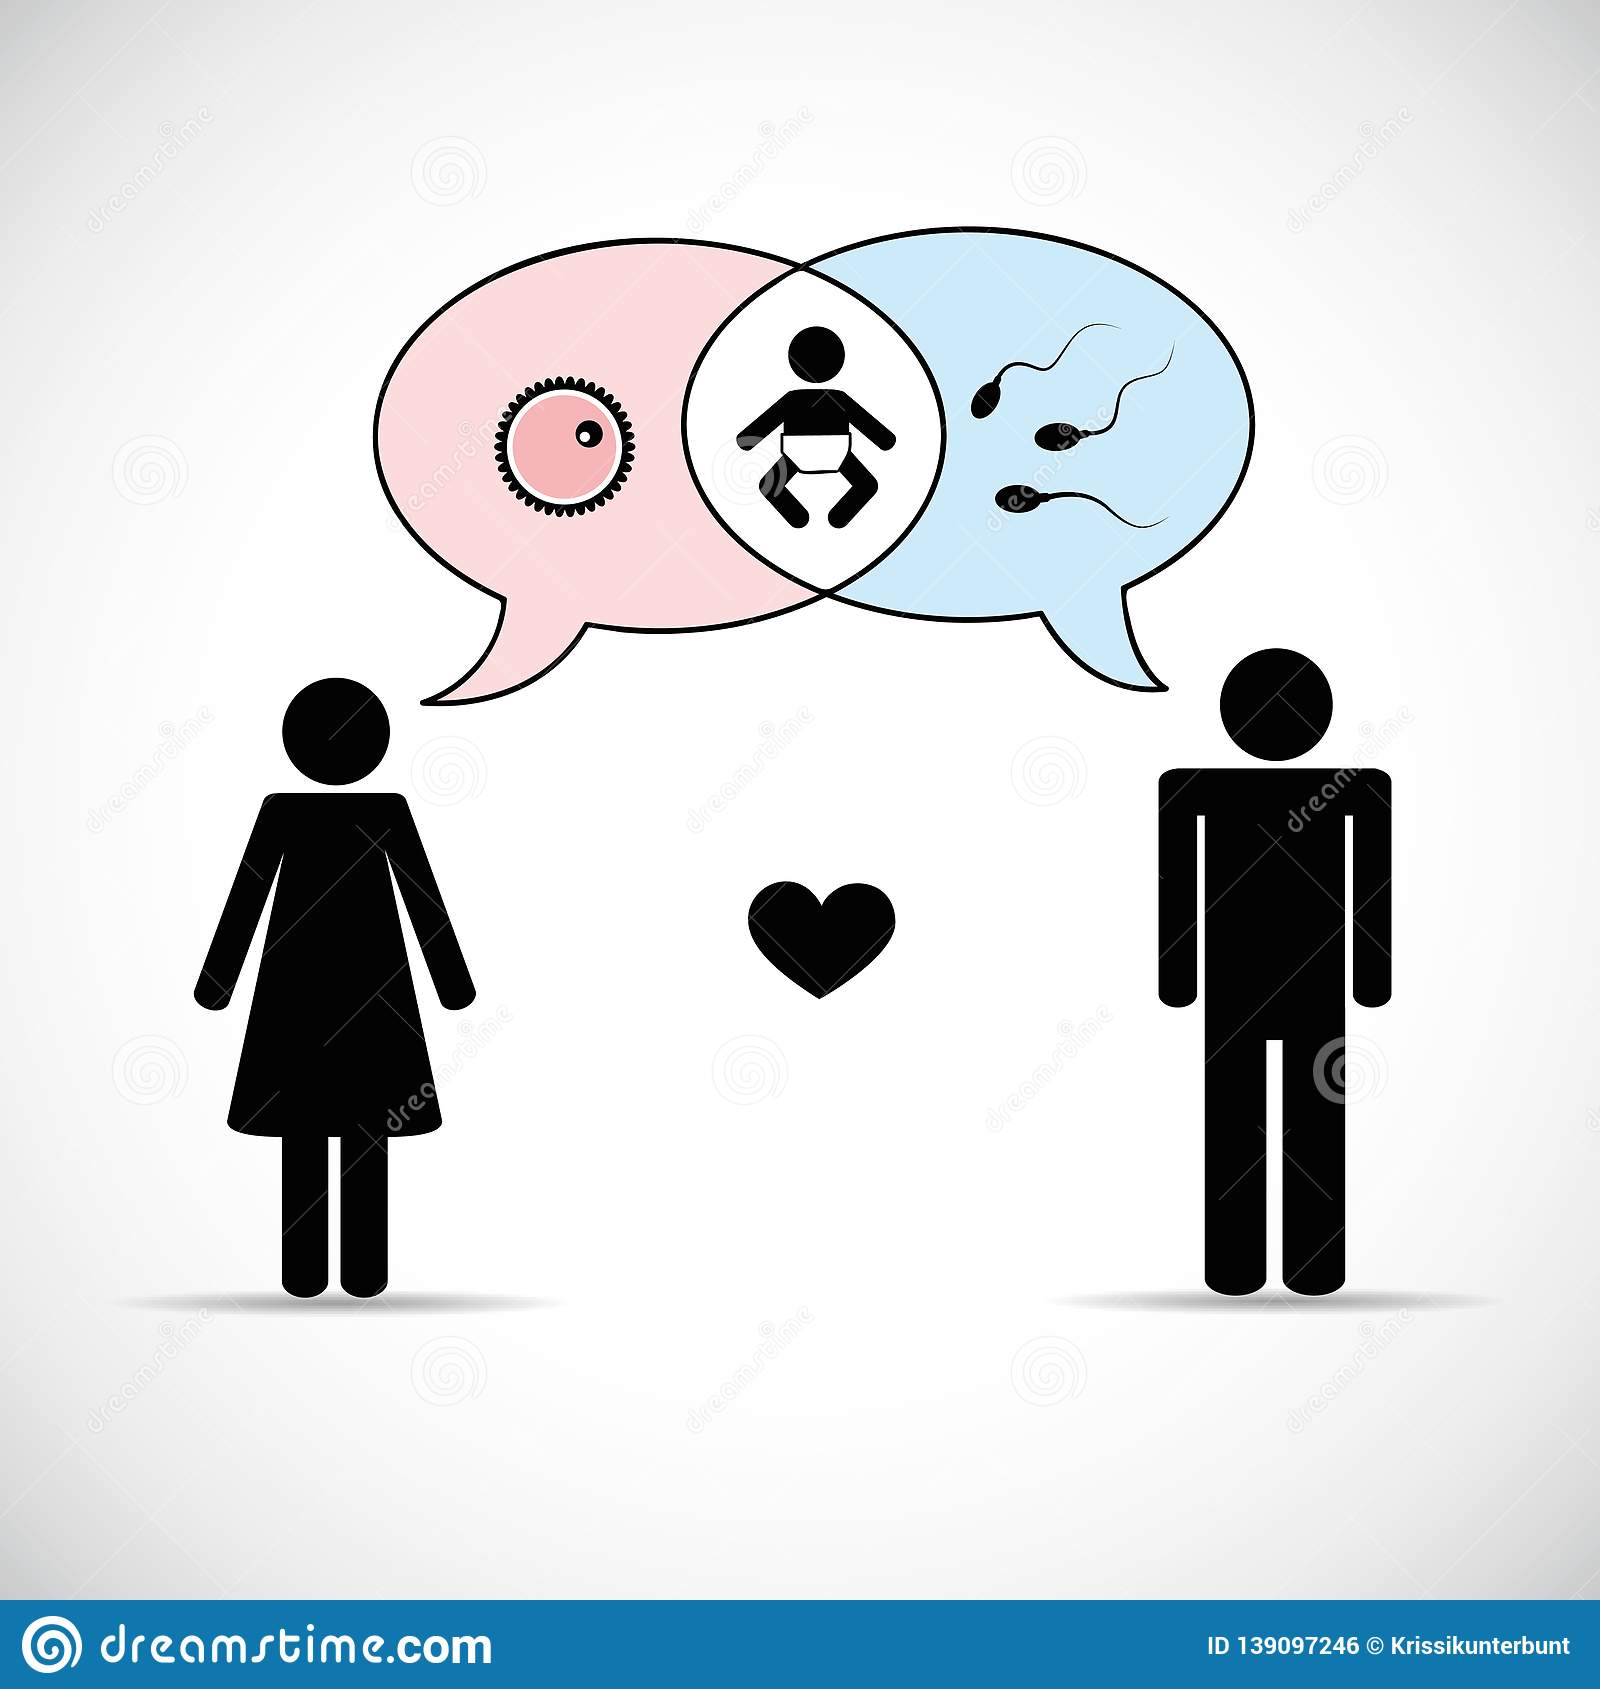 Os dejo otro rato - Página 4 Man-woman-talking-baby-pictogram-vector-illustration-eps-man-woman-talking-baby-pictogram-139097246